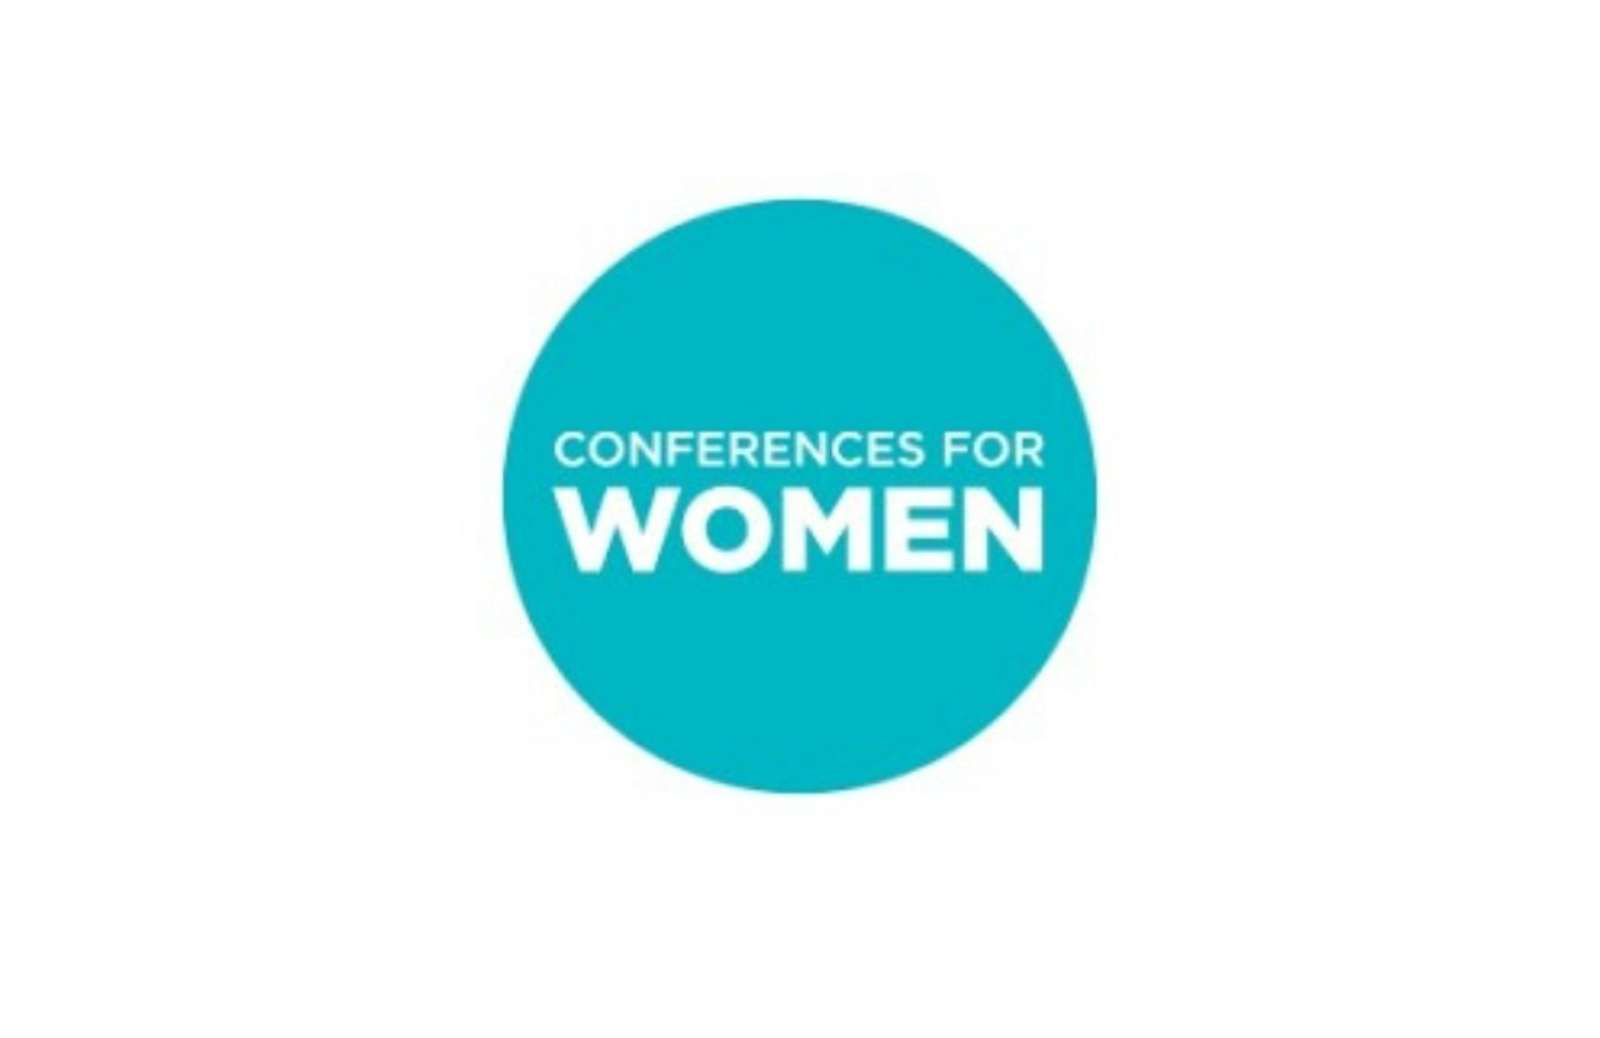 Conferences for Women Resource Thumbnail